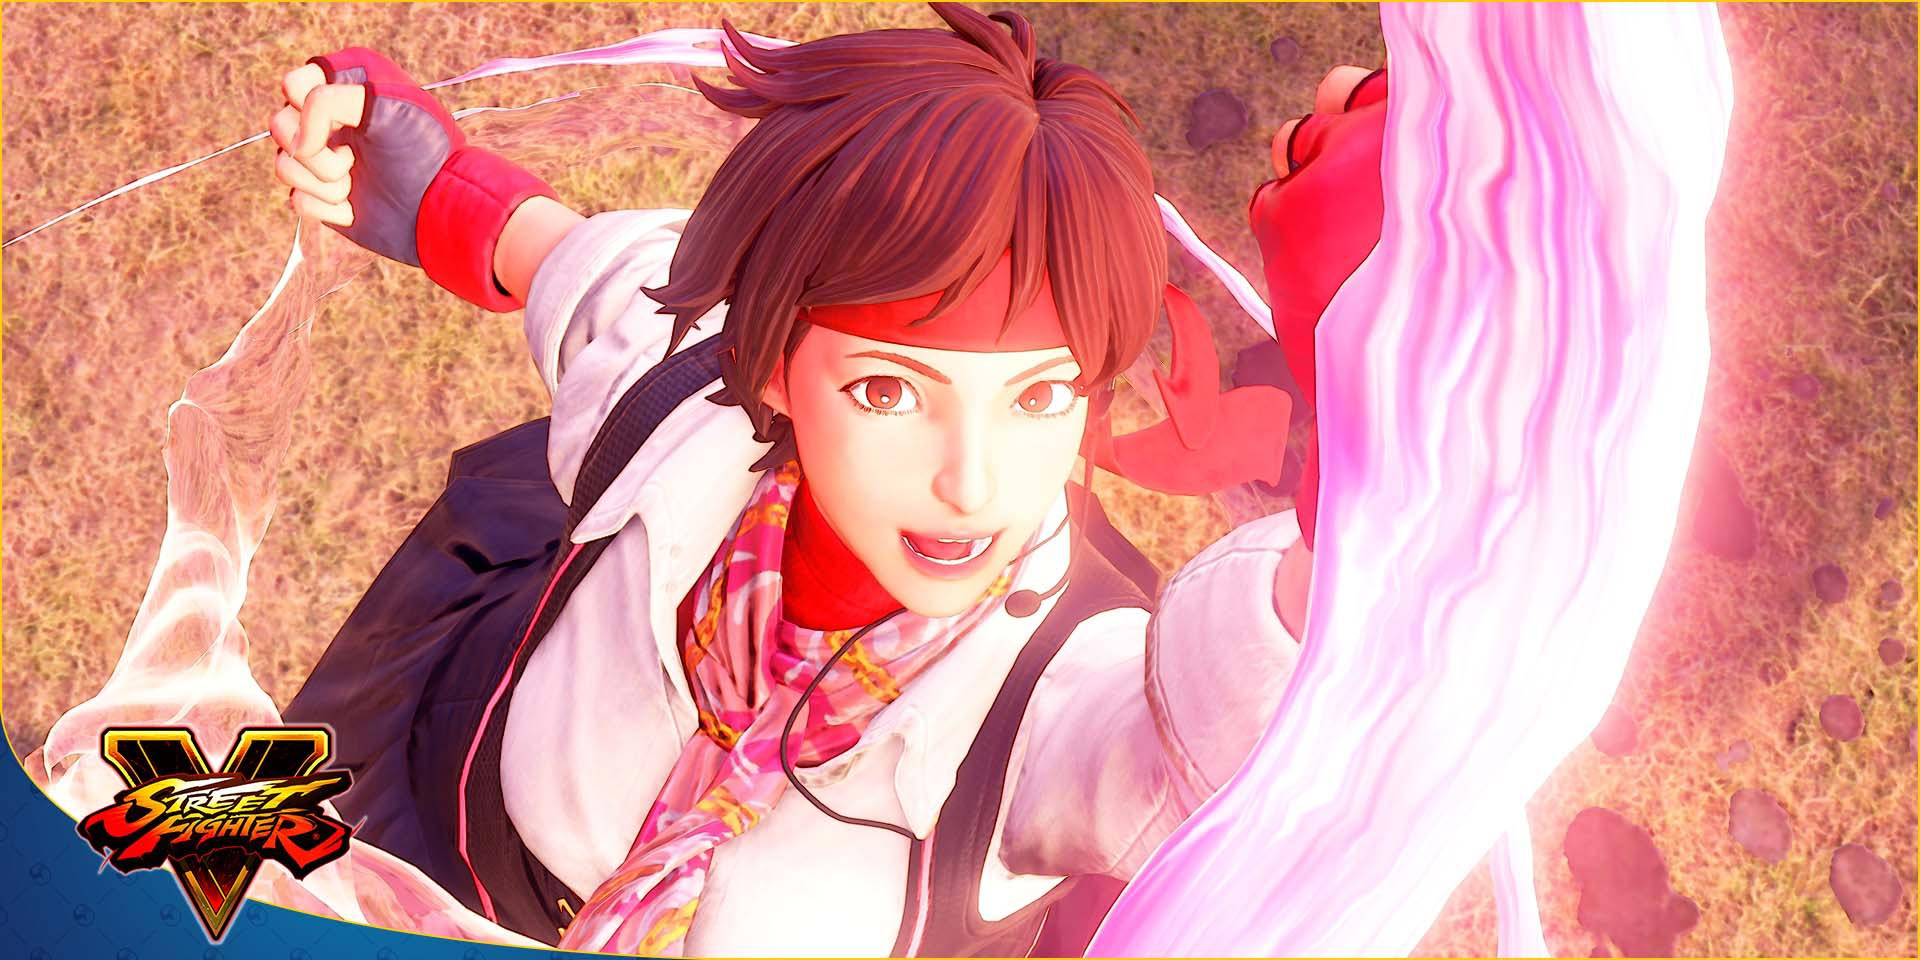 Street Fighter 5: Arcade Edition launch images 11 out of 15 image gallery